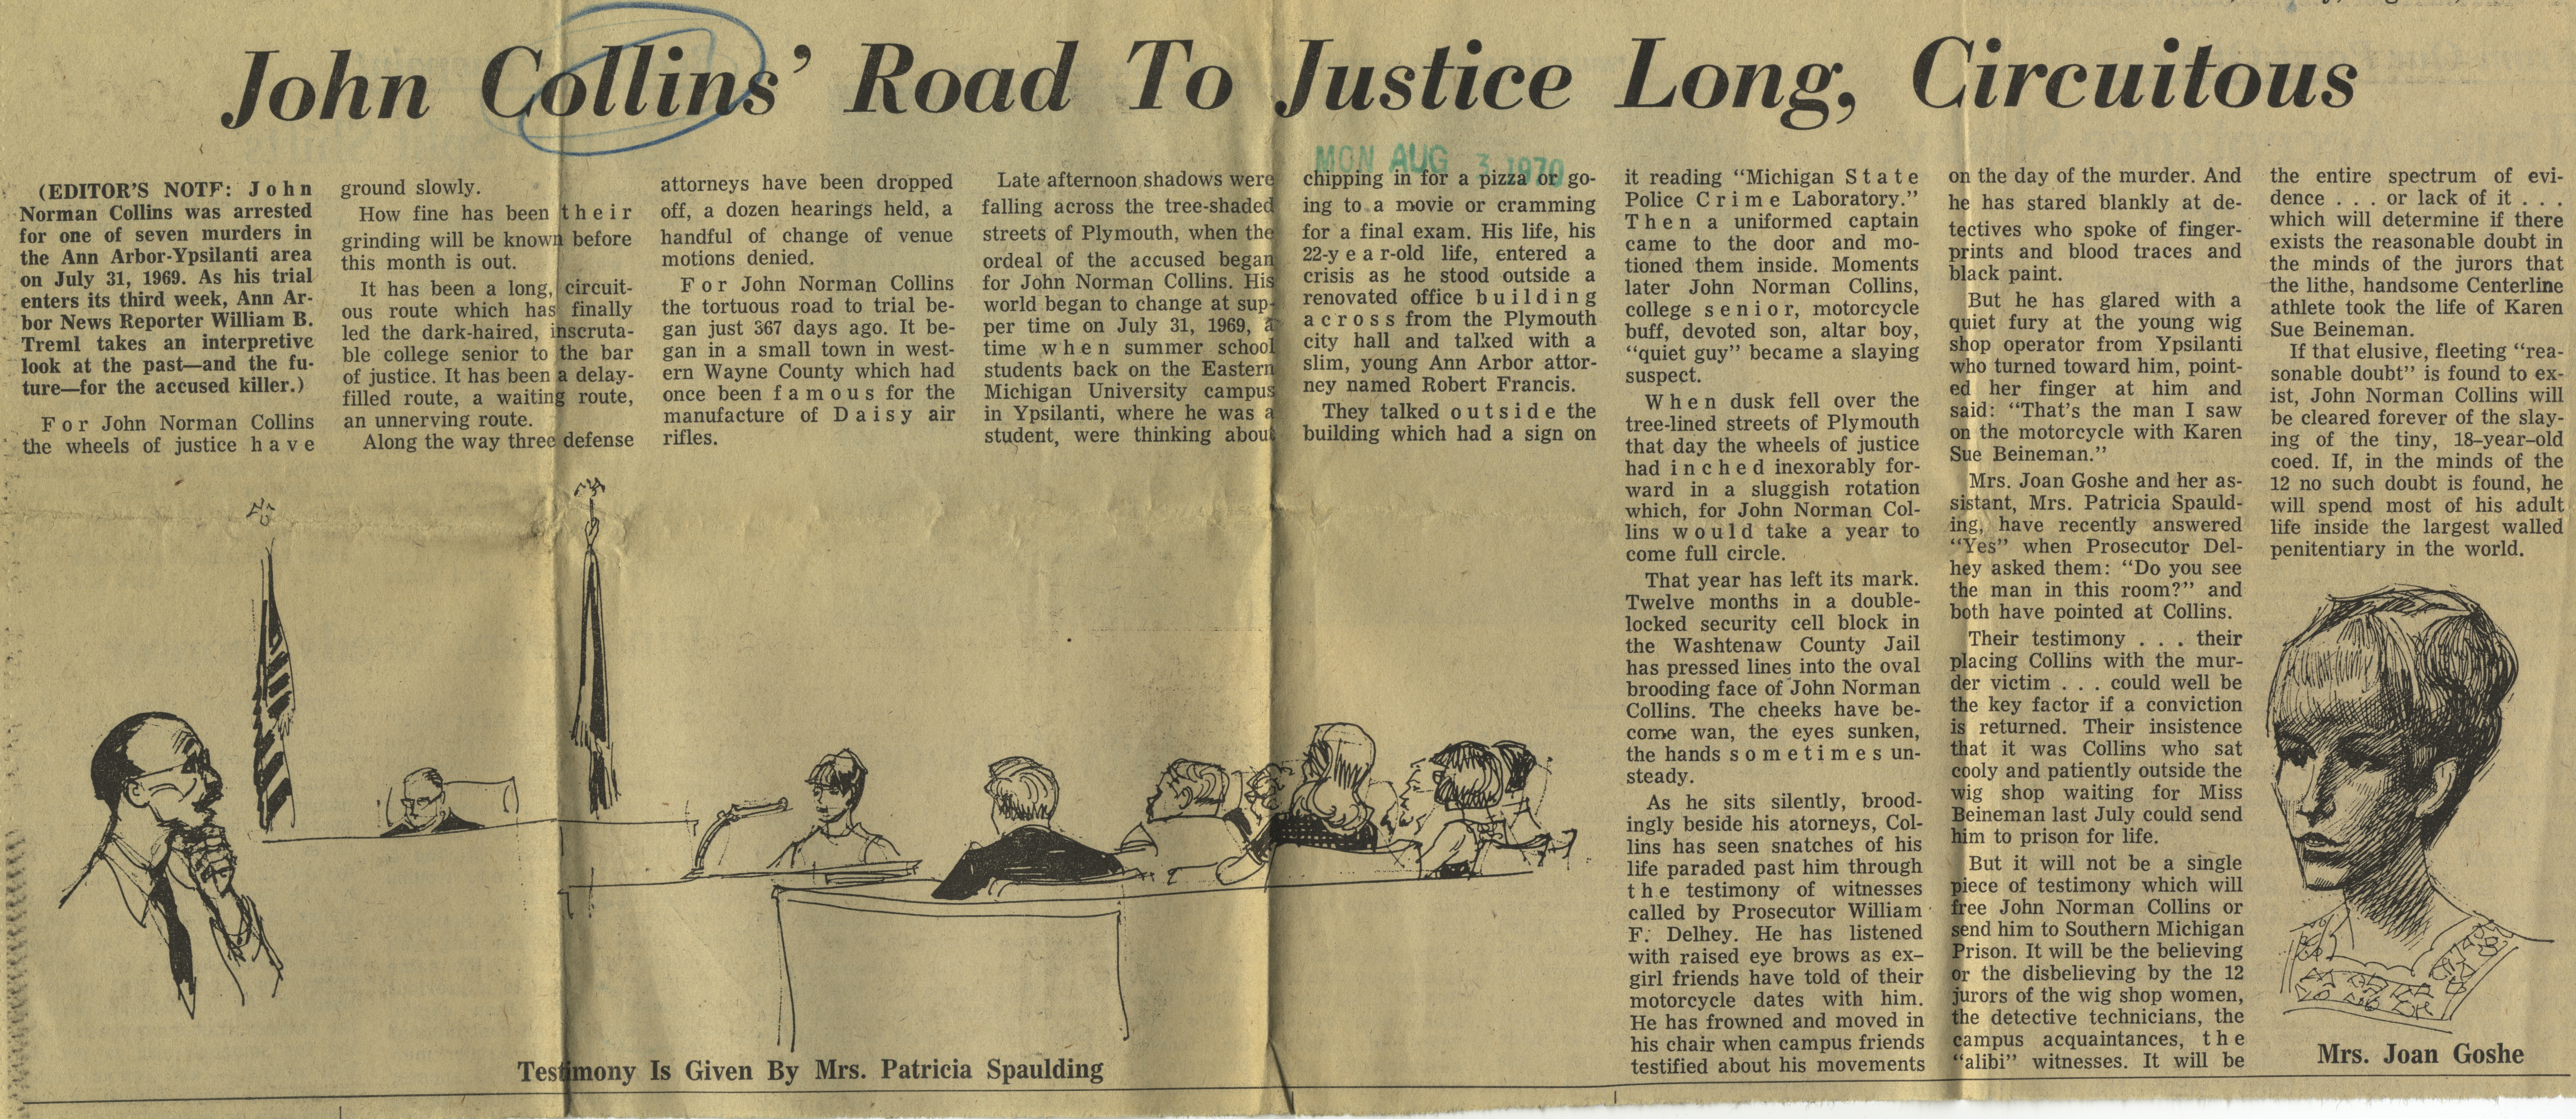 John Collins' Road To Justice Long, Circuitous image